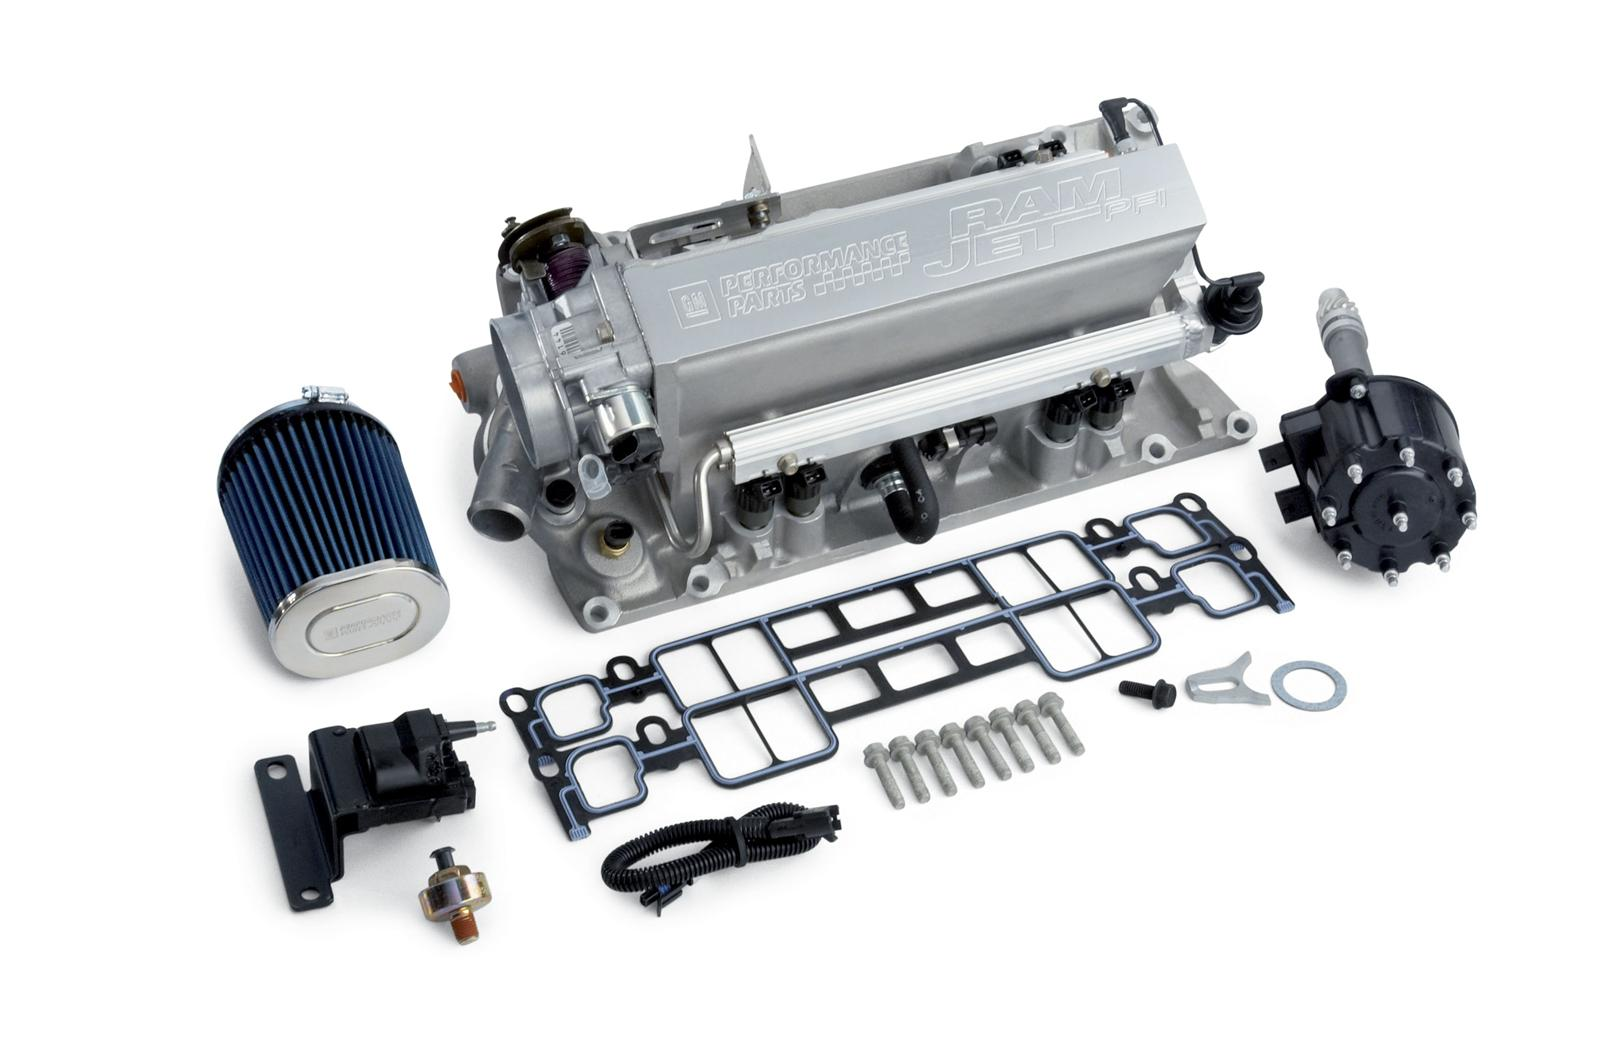 Chevrolet Performance Ram Jet Vortec Fuel Injection Kits 12498032 - Free  Shipping on Orders Over $49 at Summit Racing